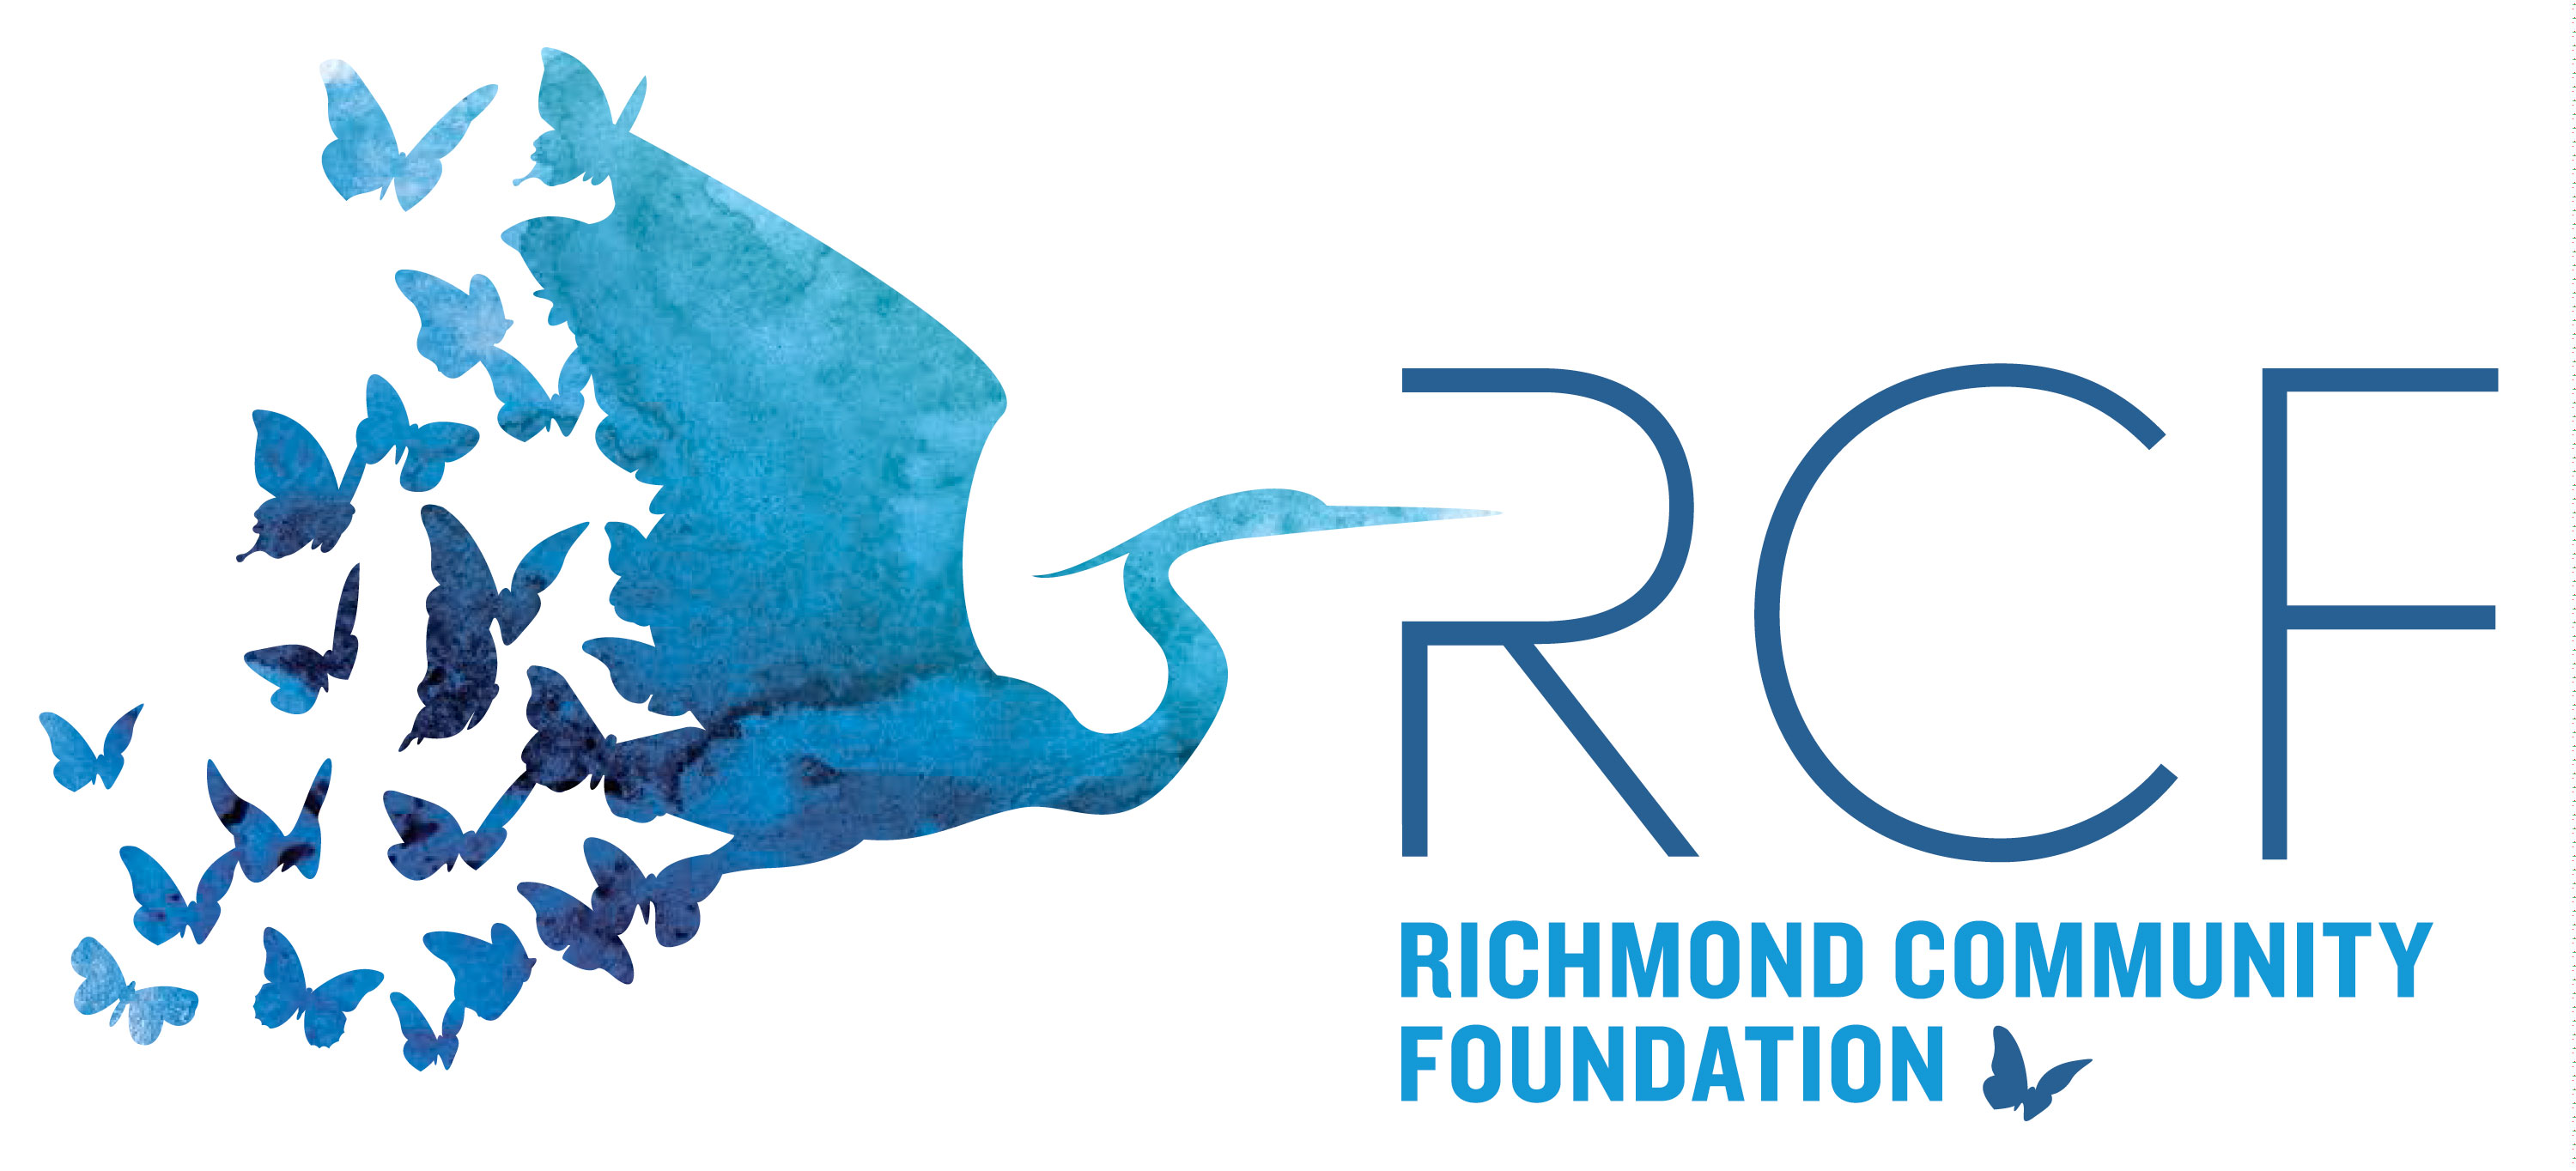 richmond community foundation logo